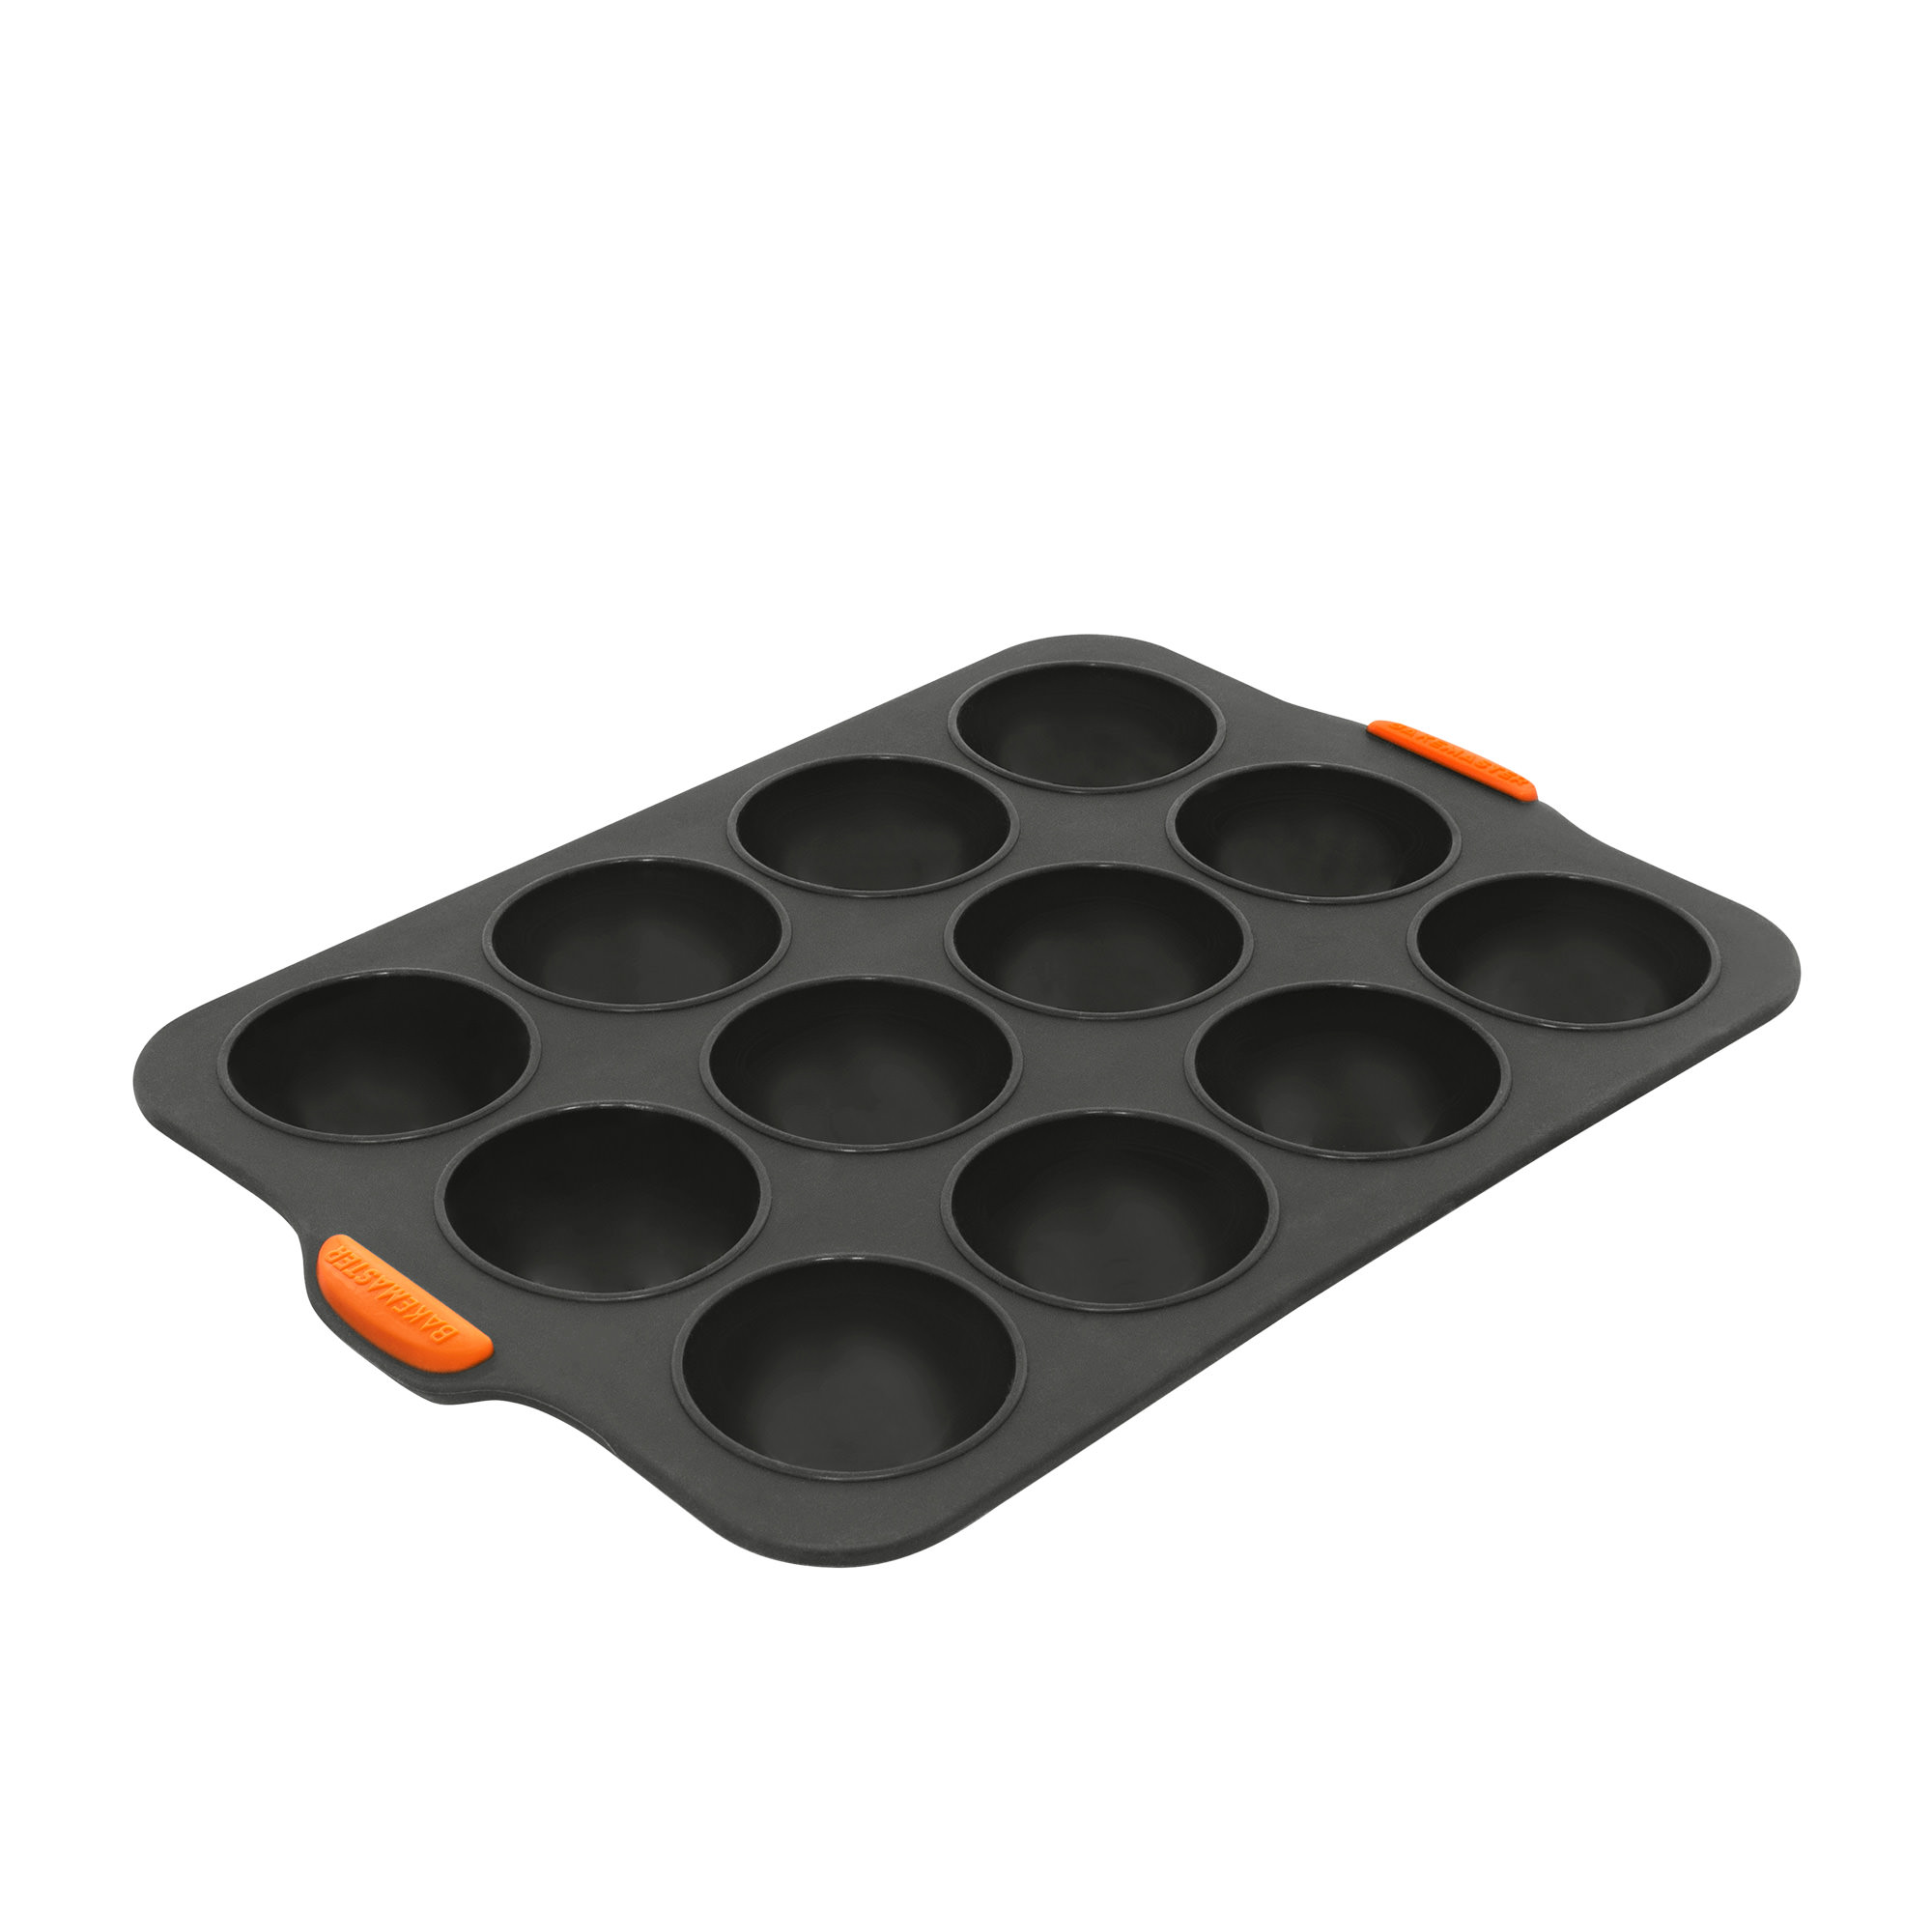 Bakemaster Silicone 12 Cup Dome Tray 35x24cm